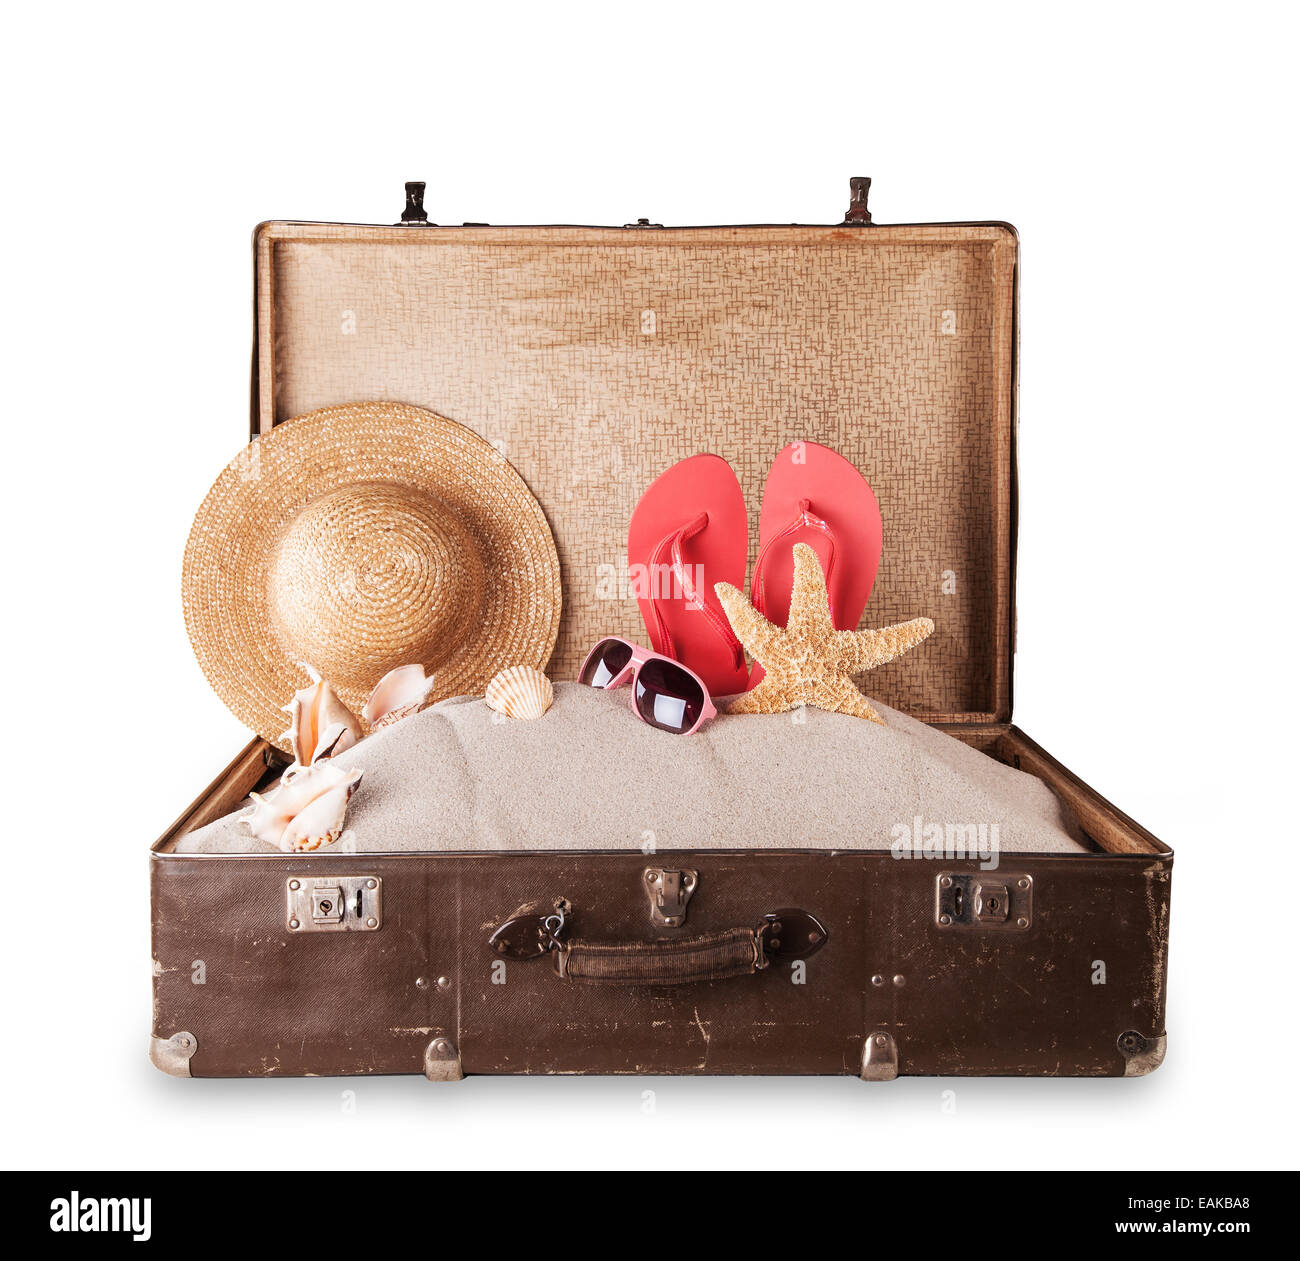 Isolated shot of retro suitcase with accessories on beach - Stock Image